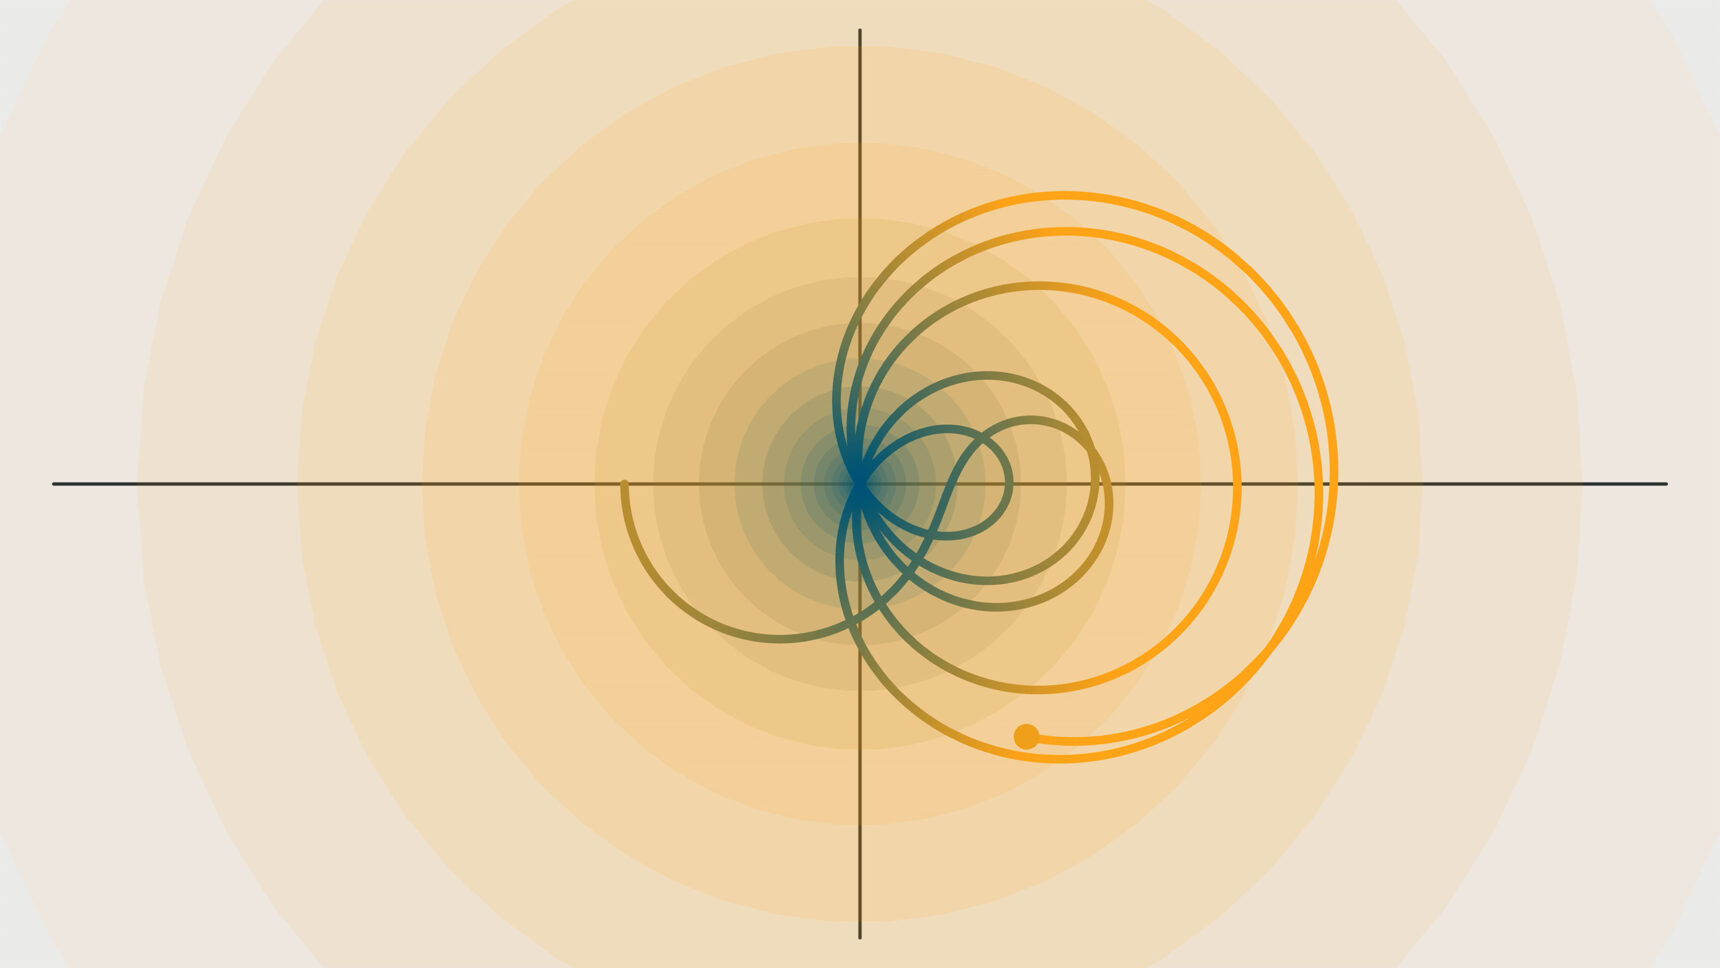 Alex Kontorovich, professor of mathematics at Rutgers University, breaks down the notoriously difficult Riemann hypothesis in this comprehensive explainer.